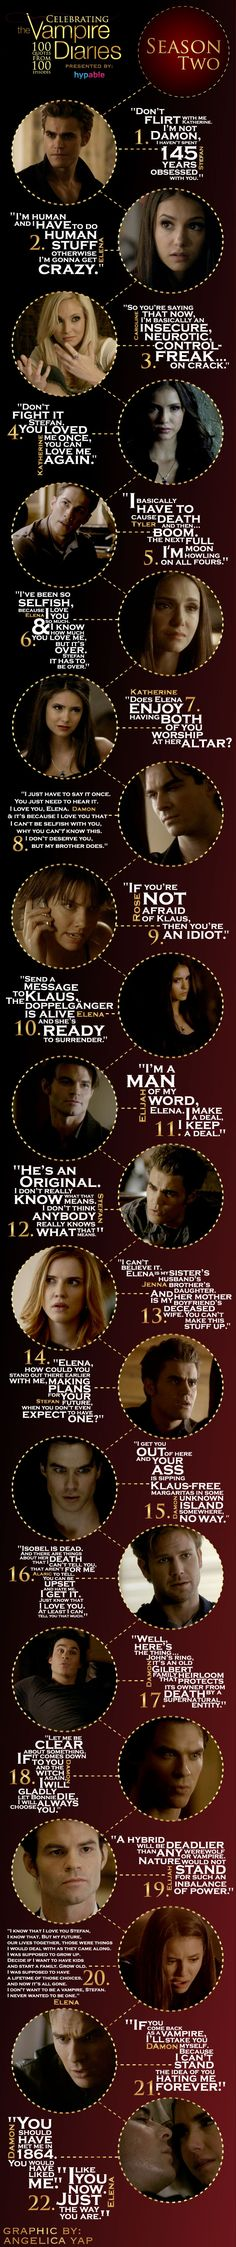 'The Vampire Diaries' quotes: The best of season 2 http://sulia.com/channel/vampire-diaries/f/ecad8251-0c56-4091-ad41-97d88eb1be58/?source=pin&action=share&btn=small&form_factor=desktop&pinner=54575851